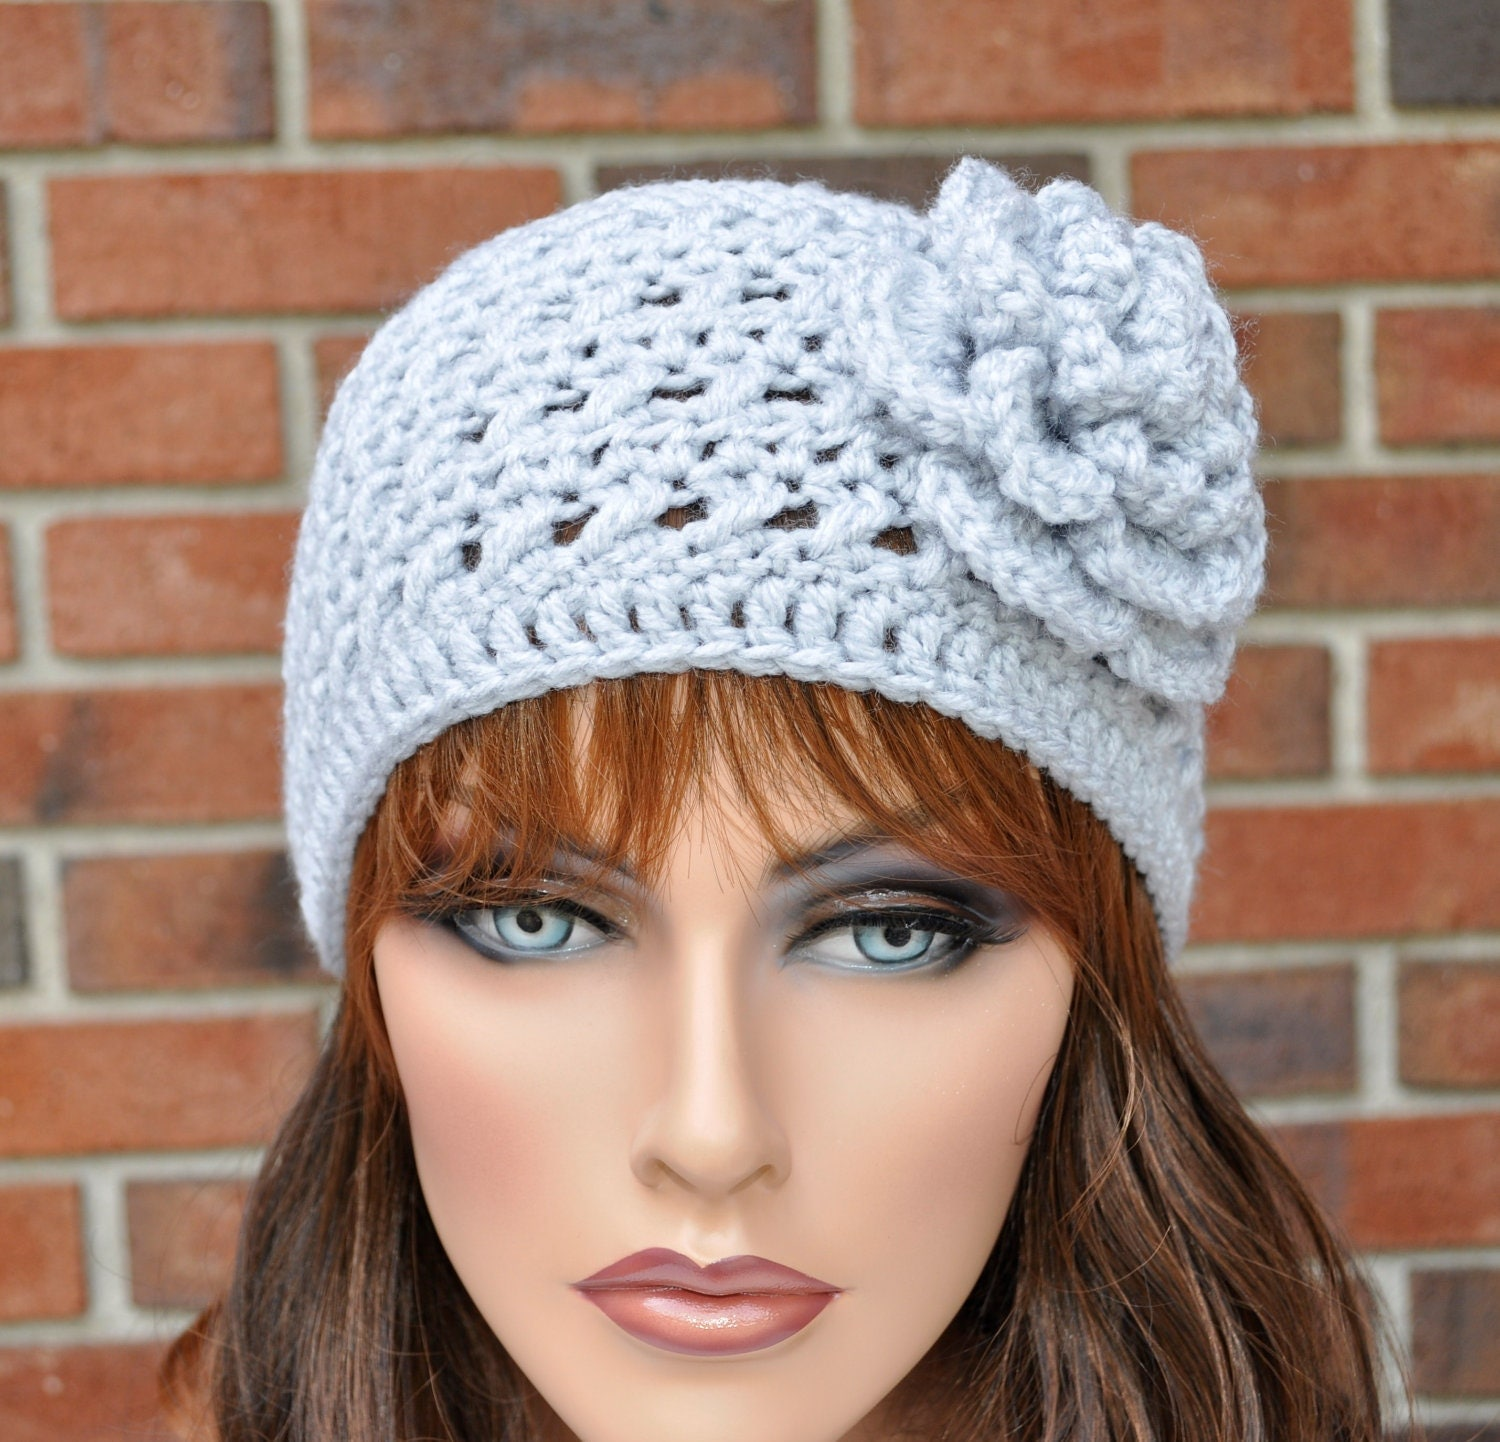 Free Crochet Pattern For Ladies Headband : Items similar to Extra wide Crochet Headband Ear Warmer ...